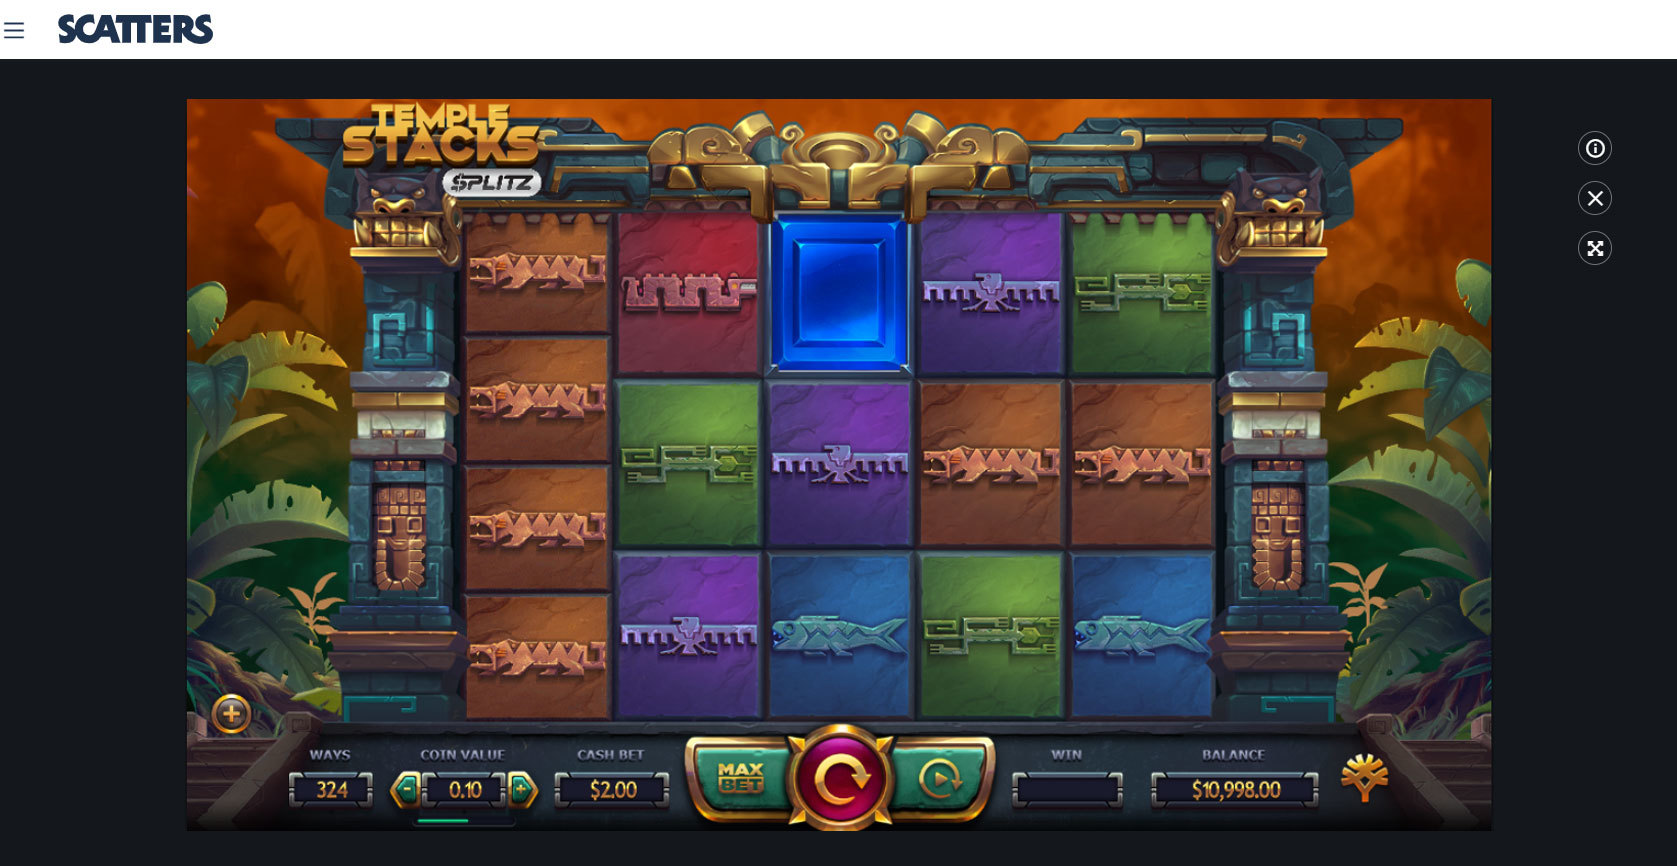 Play Temple Stacks - $PLITZ Slot by Yggdrasilfor Free or Real Money at Scatters